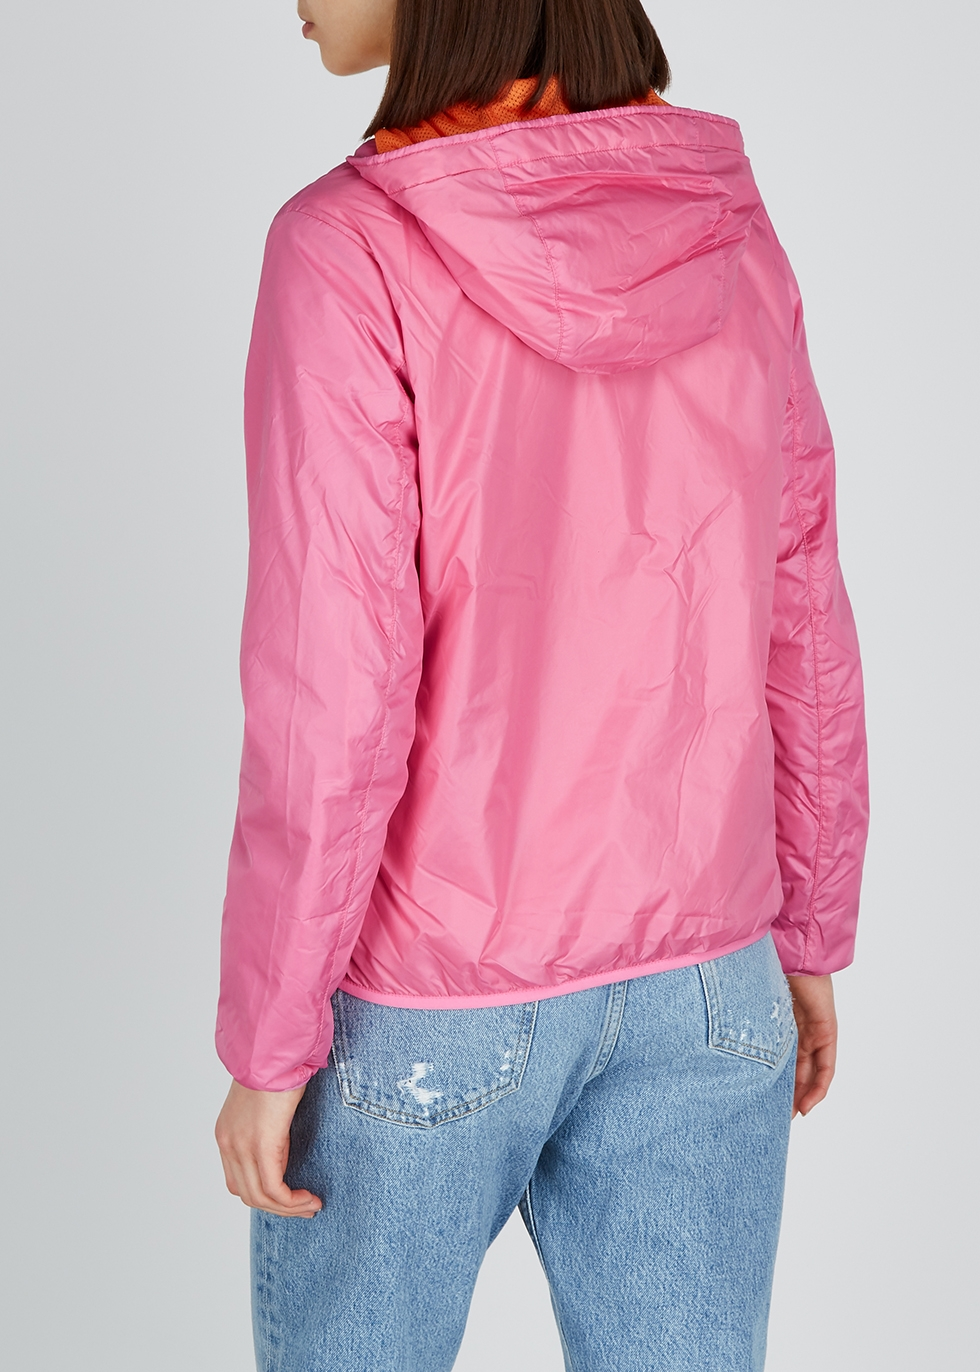 Pink hooded shell jacket - Colmar